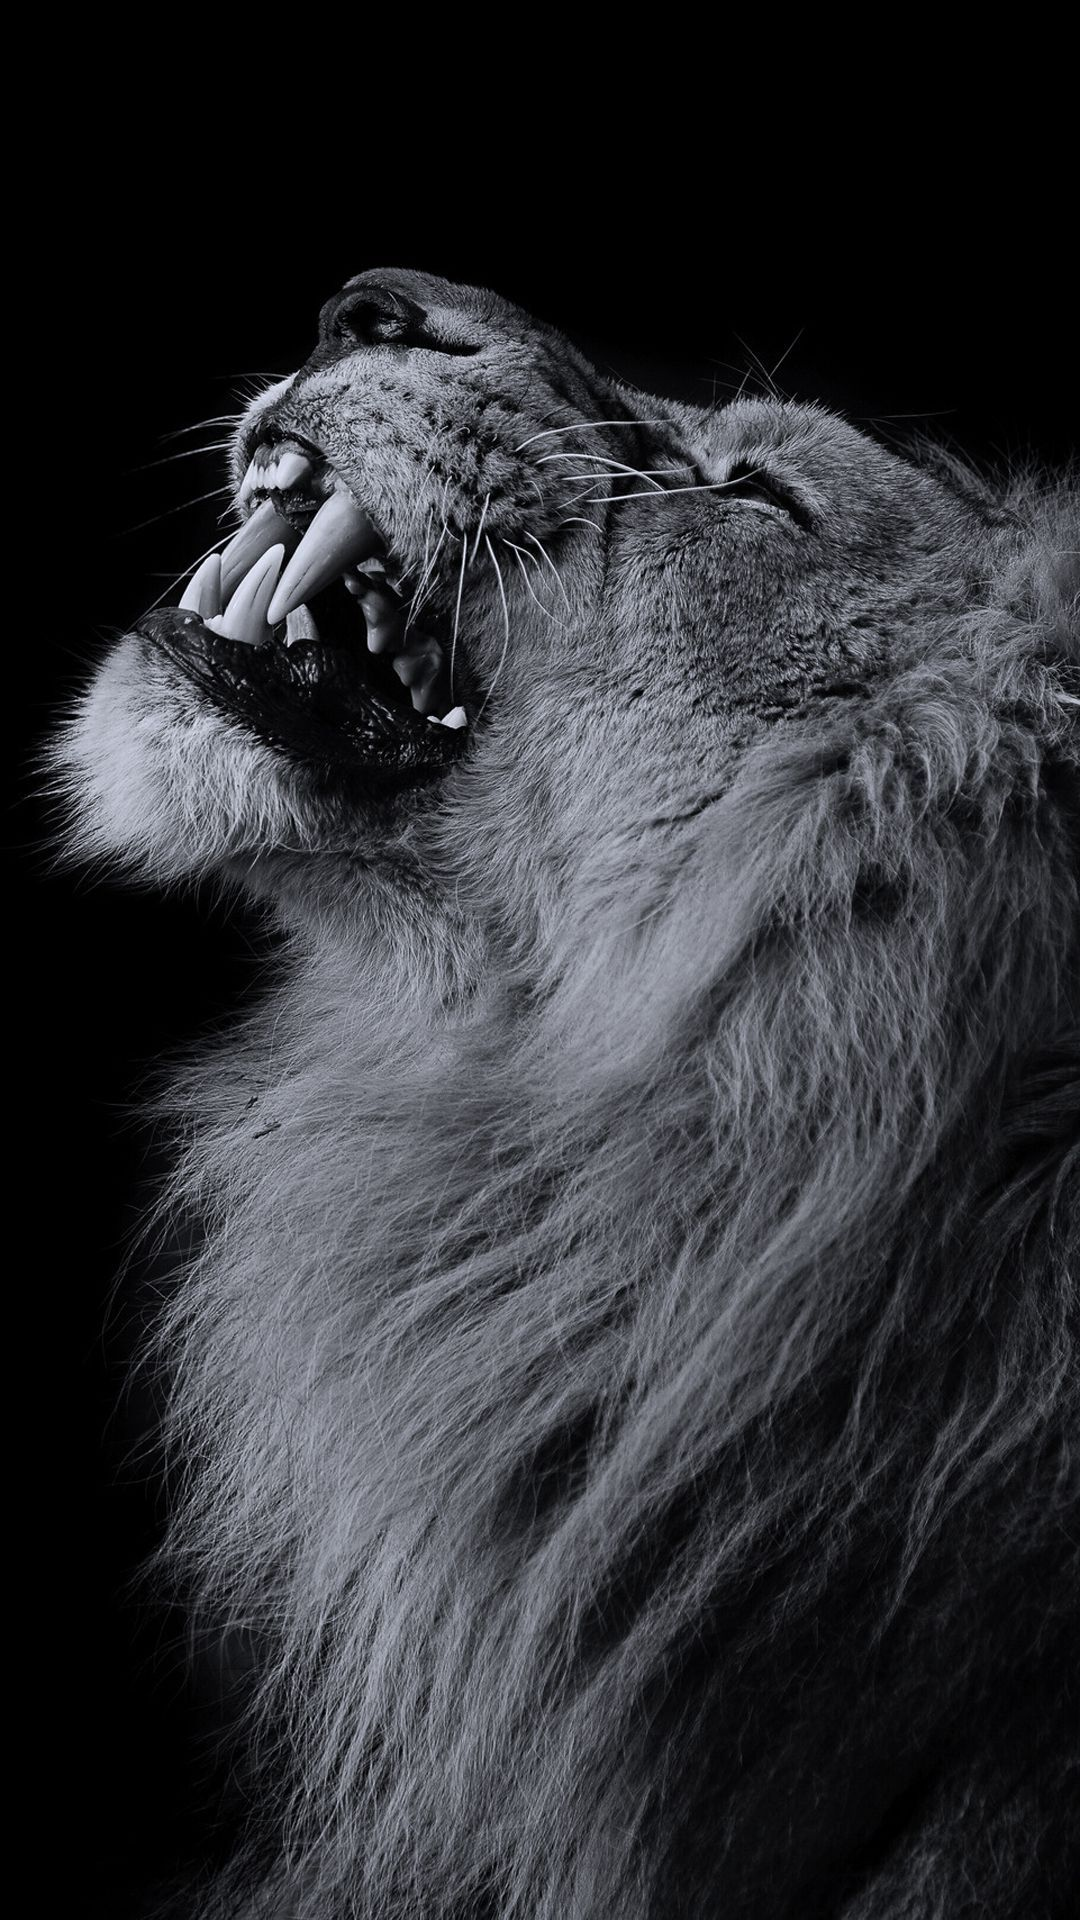 Black Lion Wallpaper 1080p For Iphone Wallpaper On Hupages Com If You Like It Dont Forget Save It Or Repin In 2020 Lion Images Lion Photography Wild Animal Wallpaper